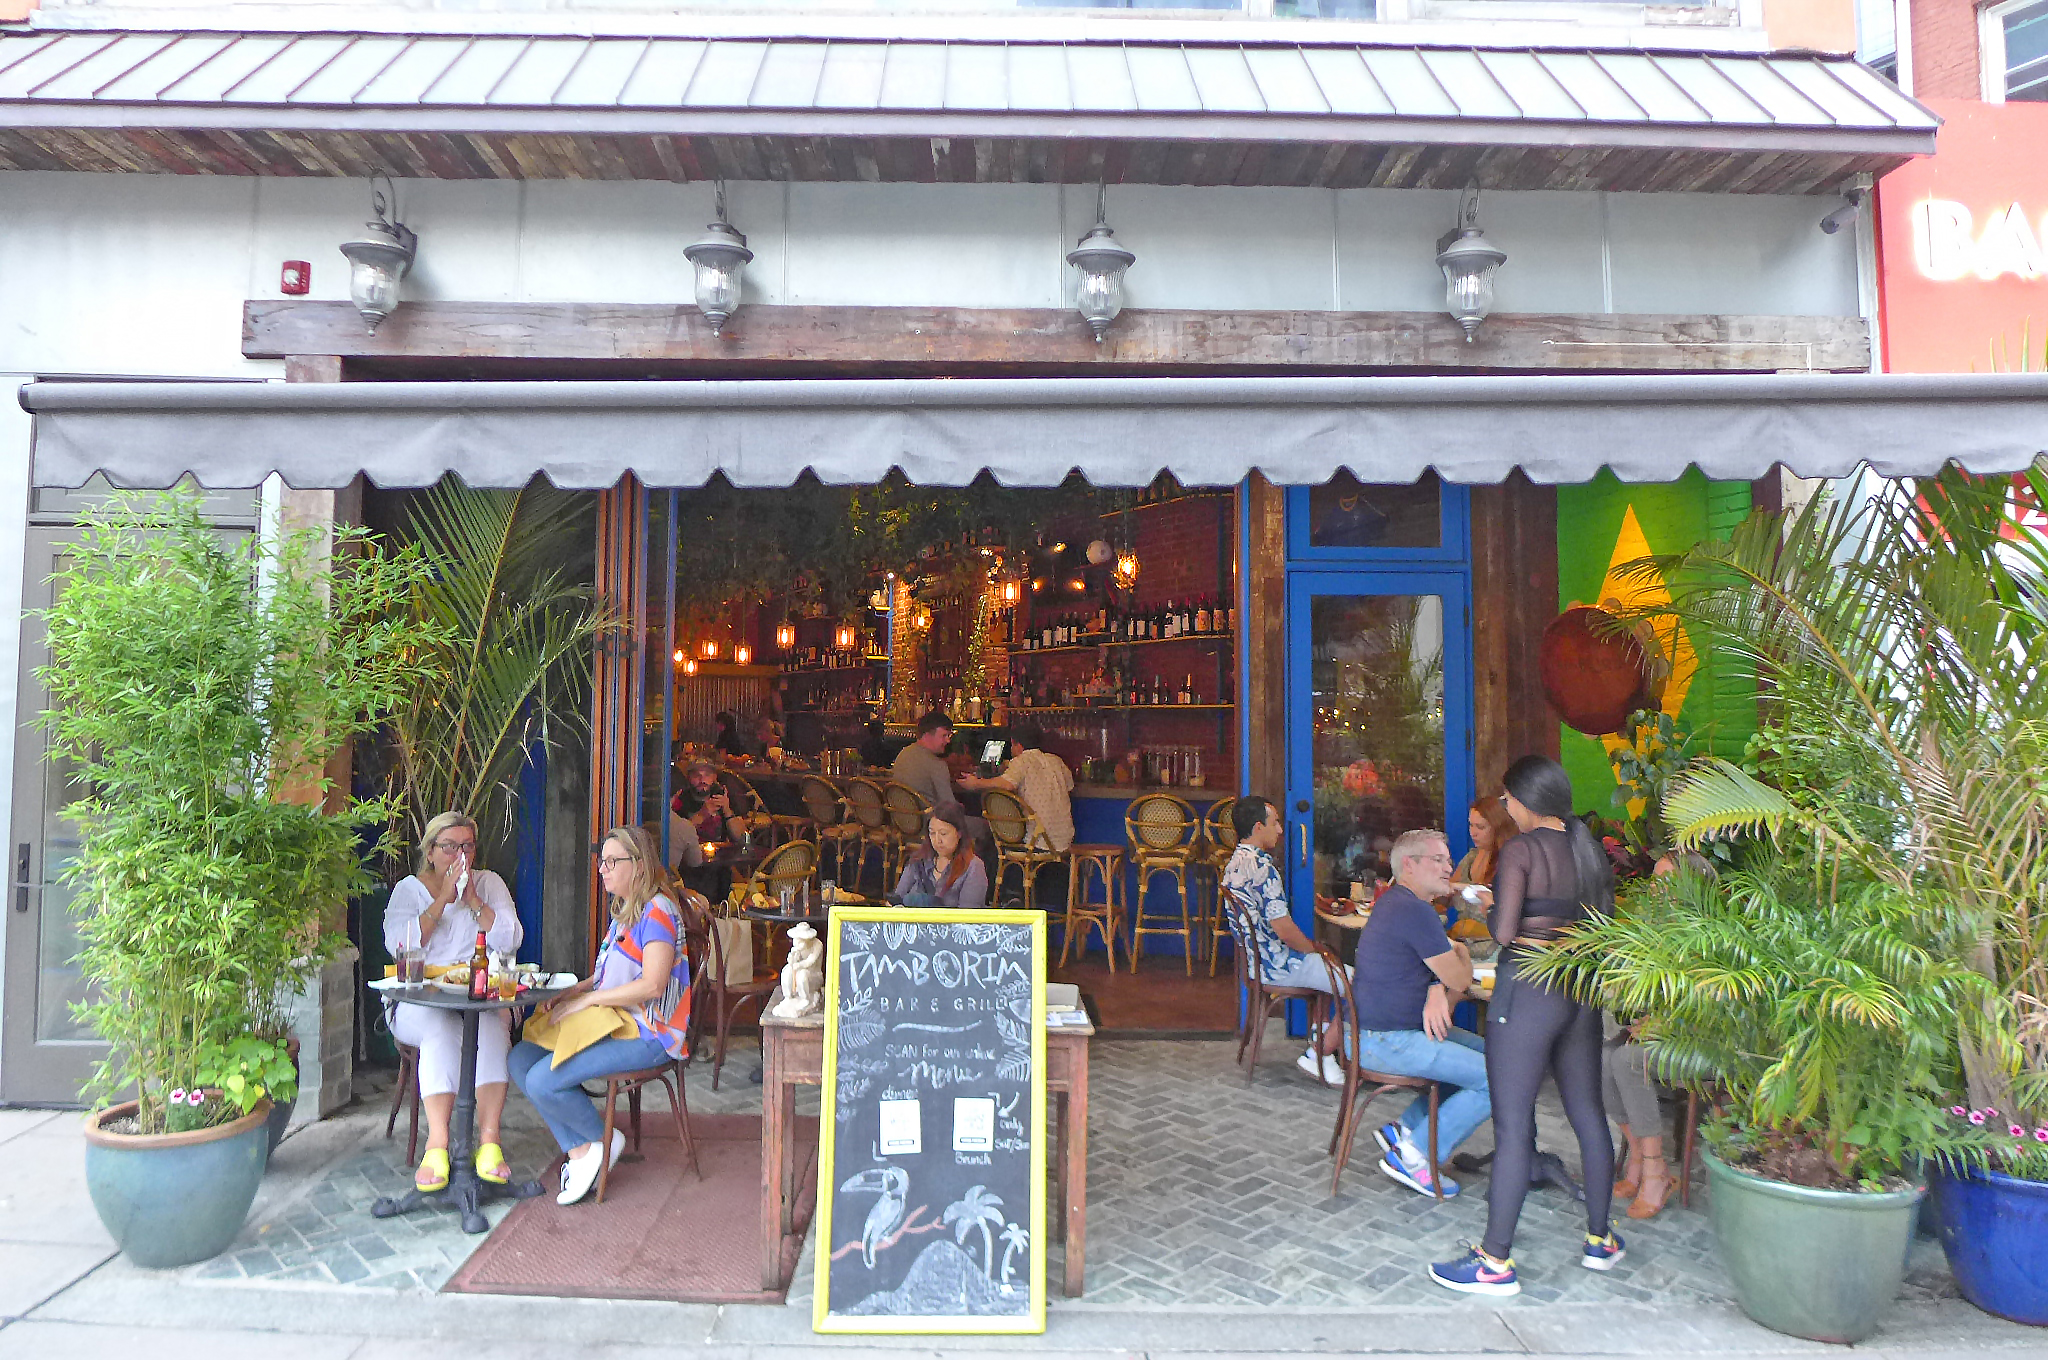 A open storefront with tables on the sidewalk amid potted foliage, looking into a bar.